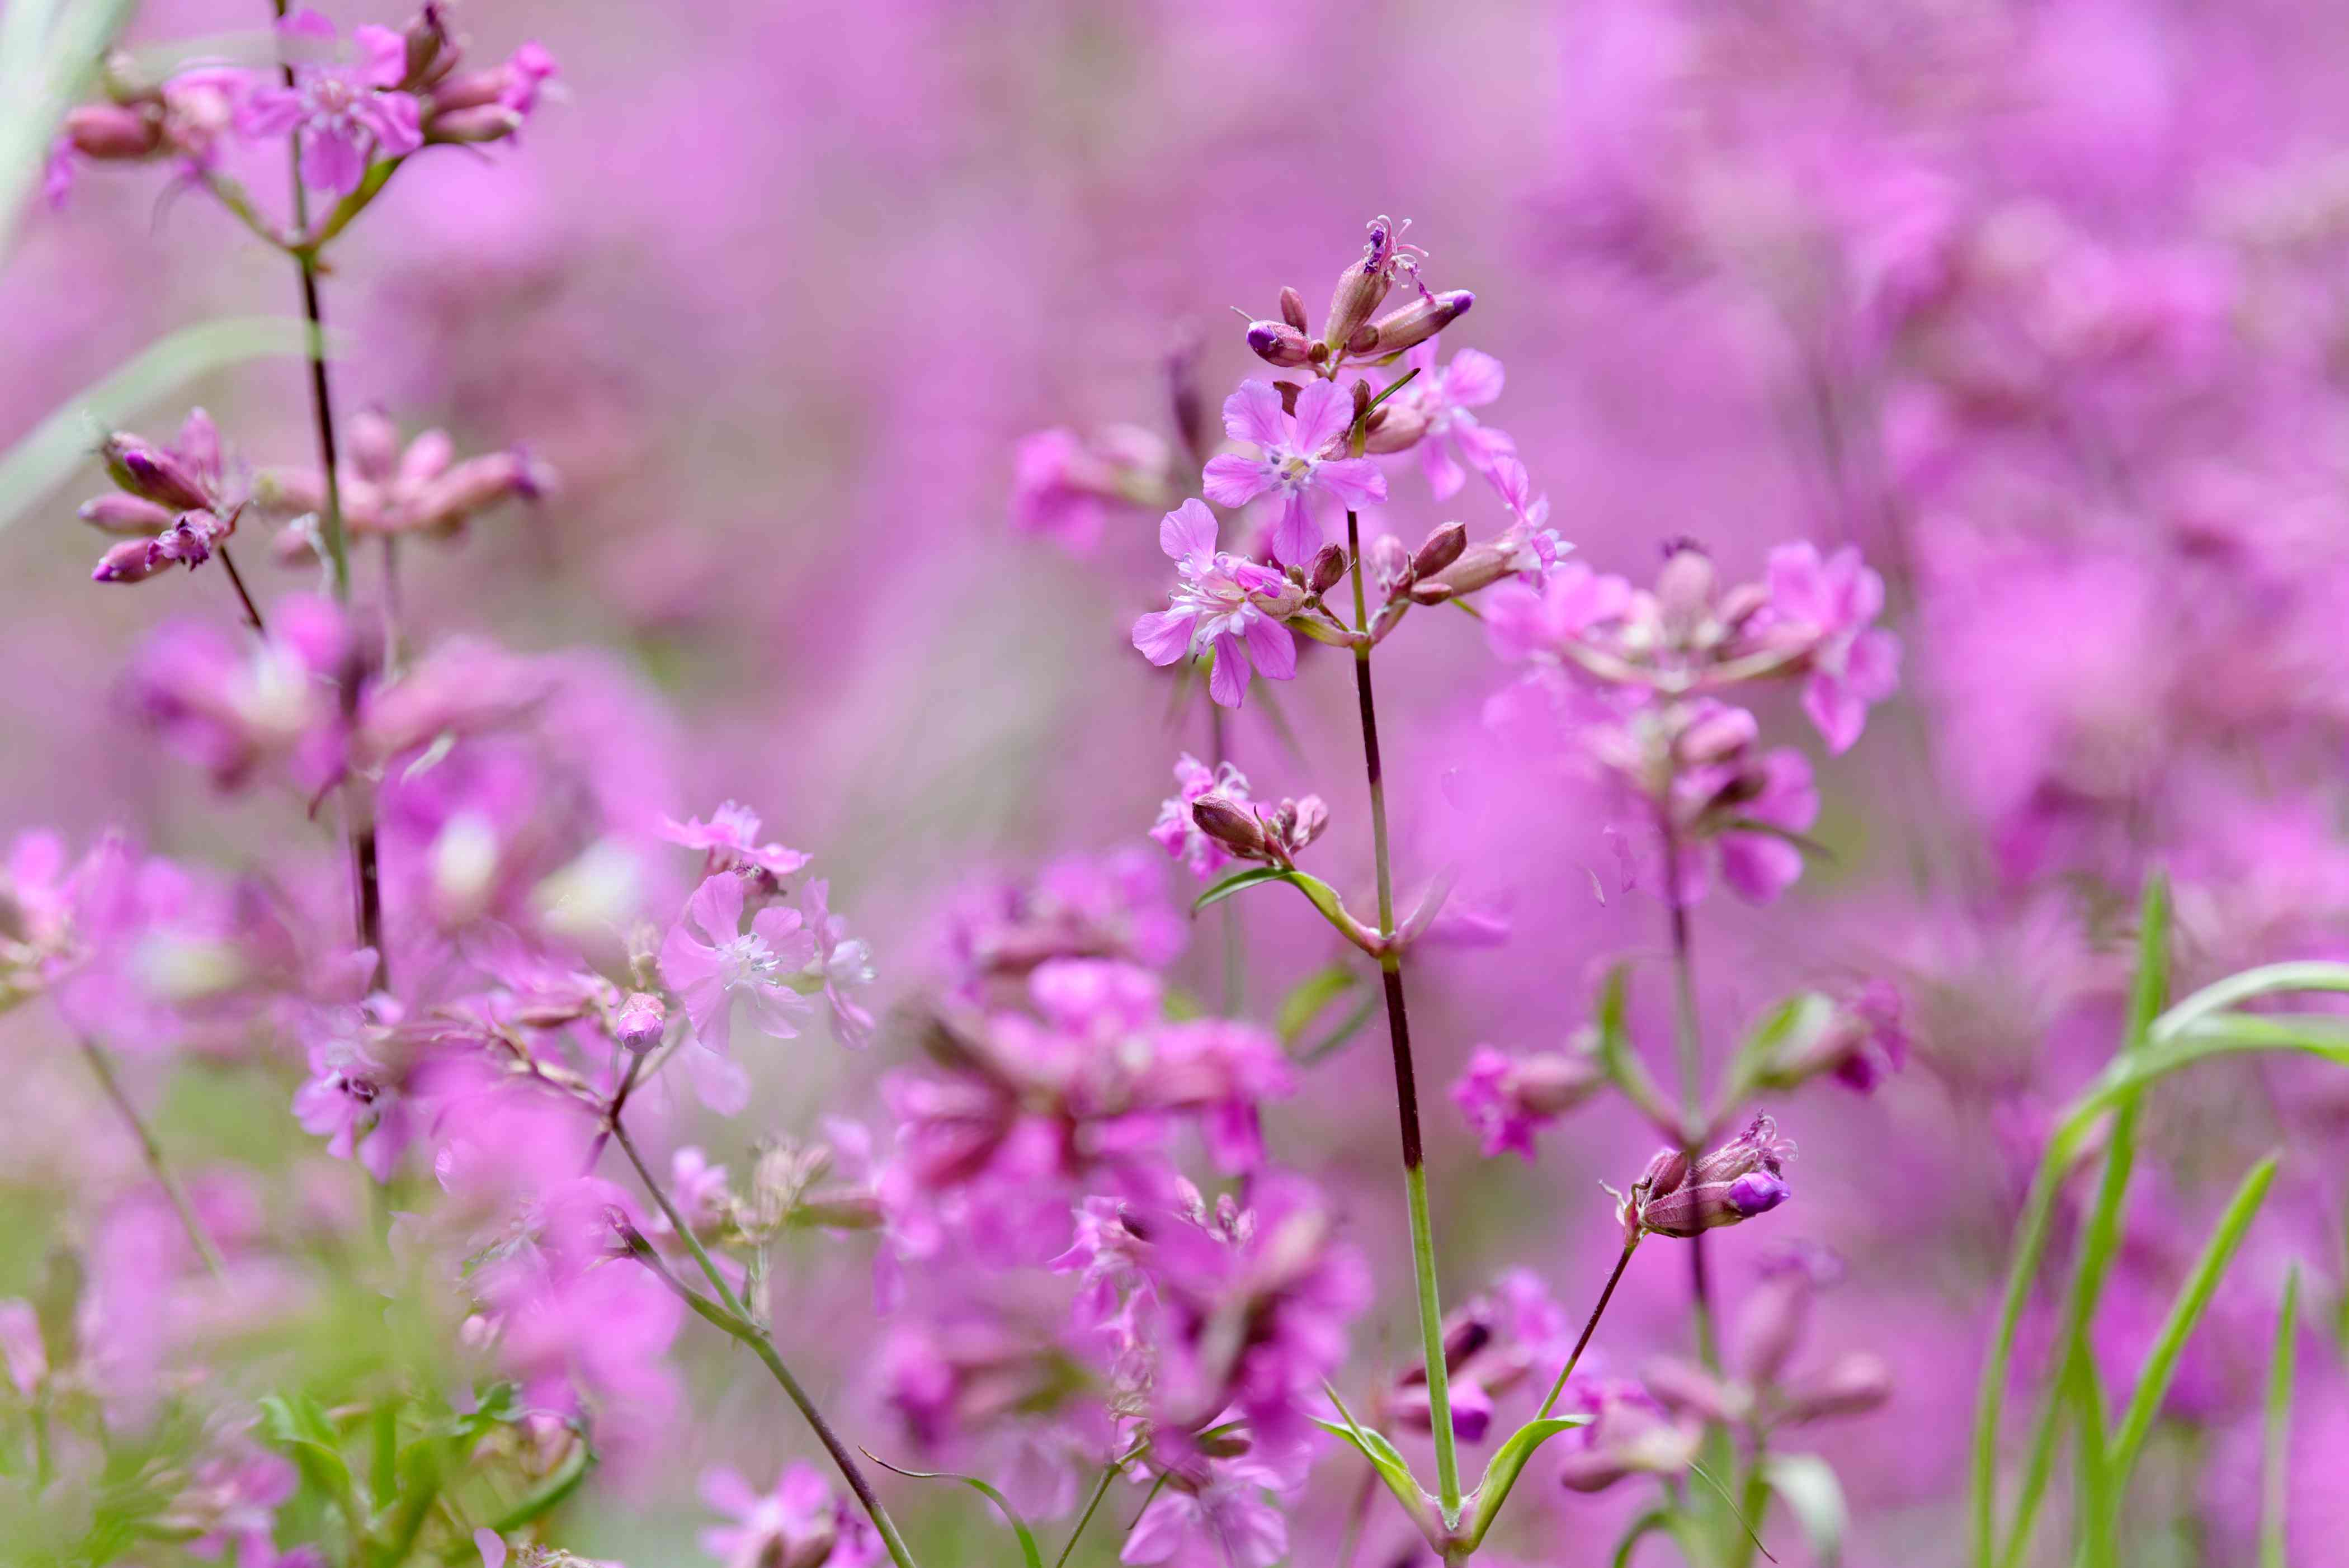 Silene viscaria plant with small pink flowers and buds on thin stems closeup